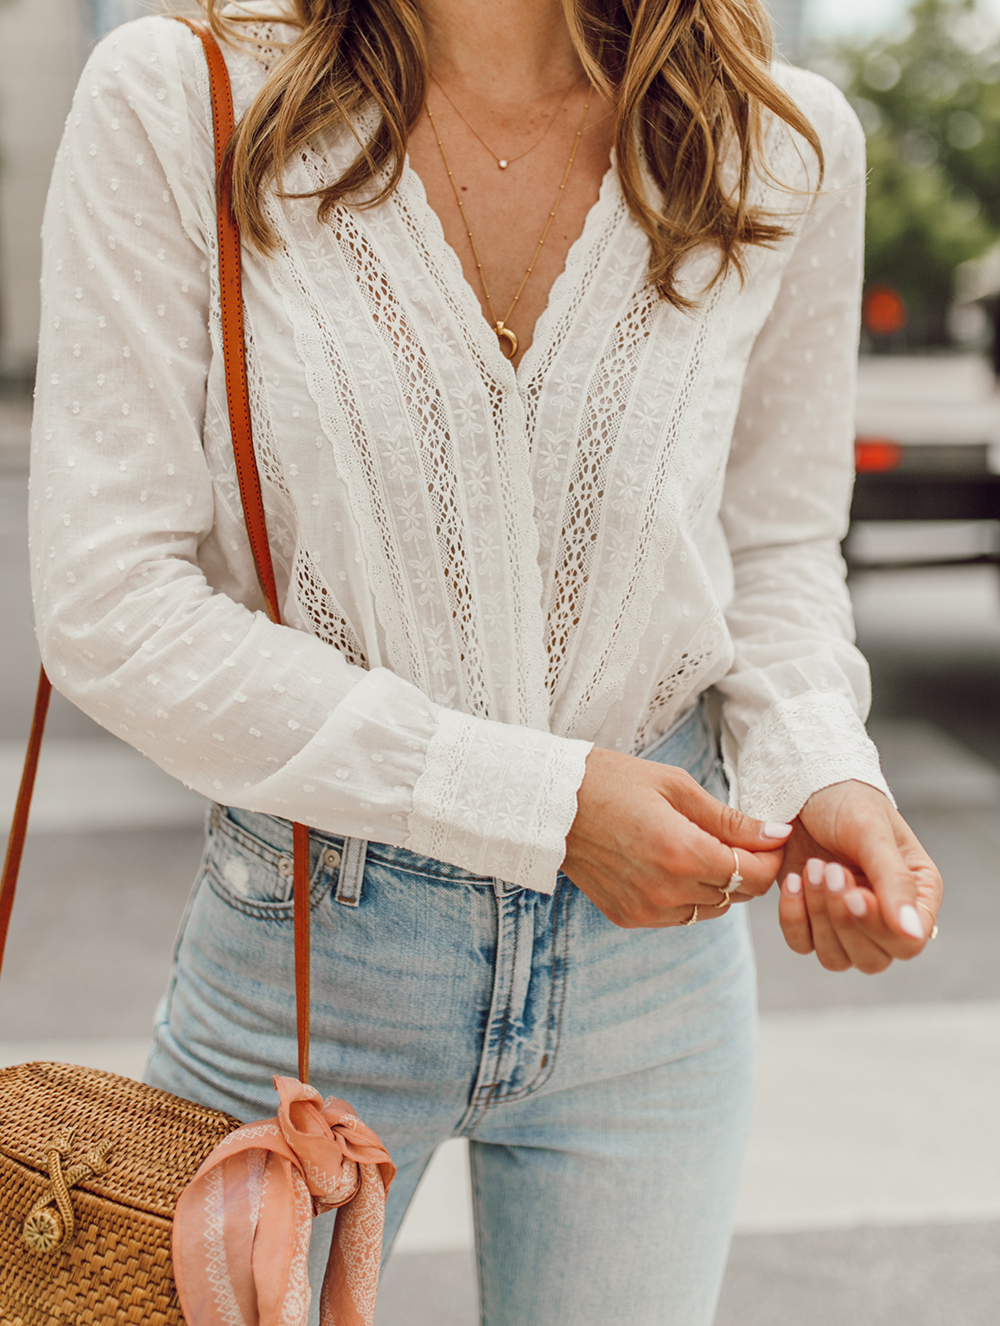 livvland-blog-olivia-watson-austin-texas-fashion-lifestyle-blogger-sezane-lace-deep-v-top-rattan-bag-madewell-summer-jeans-5